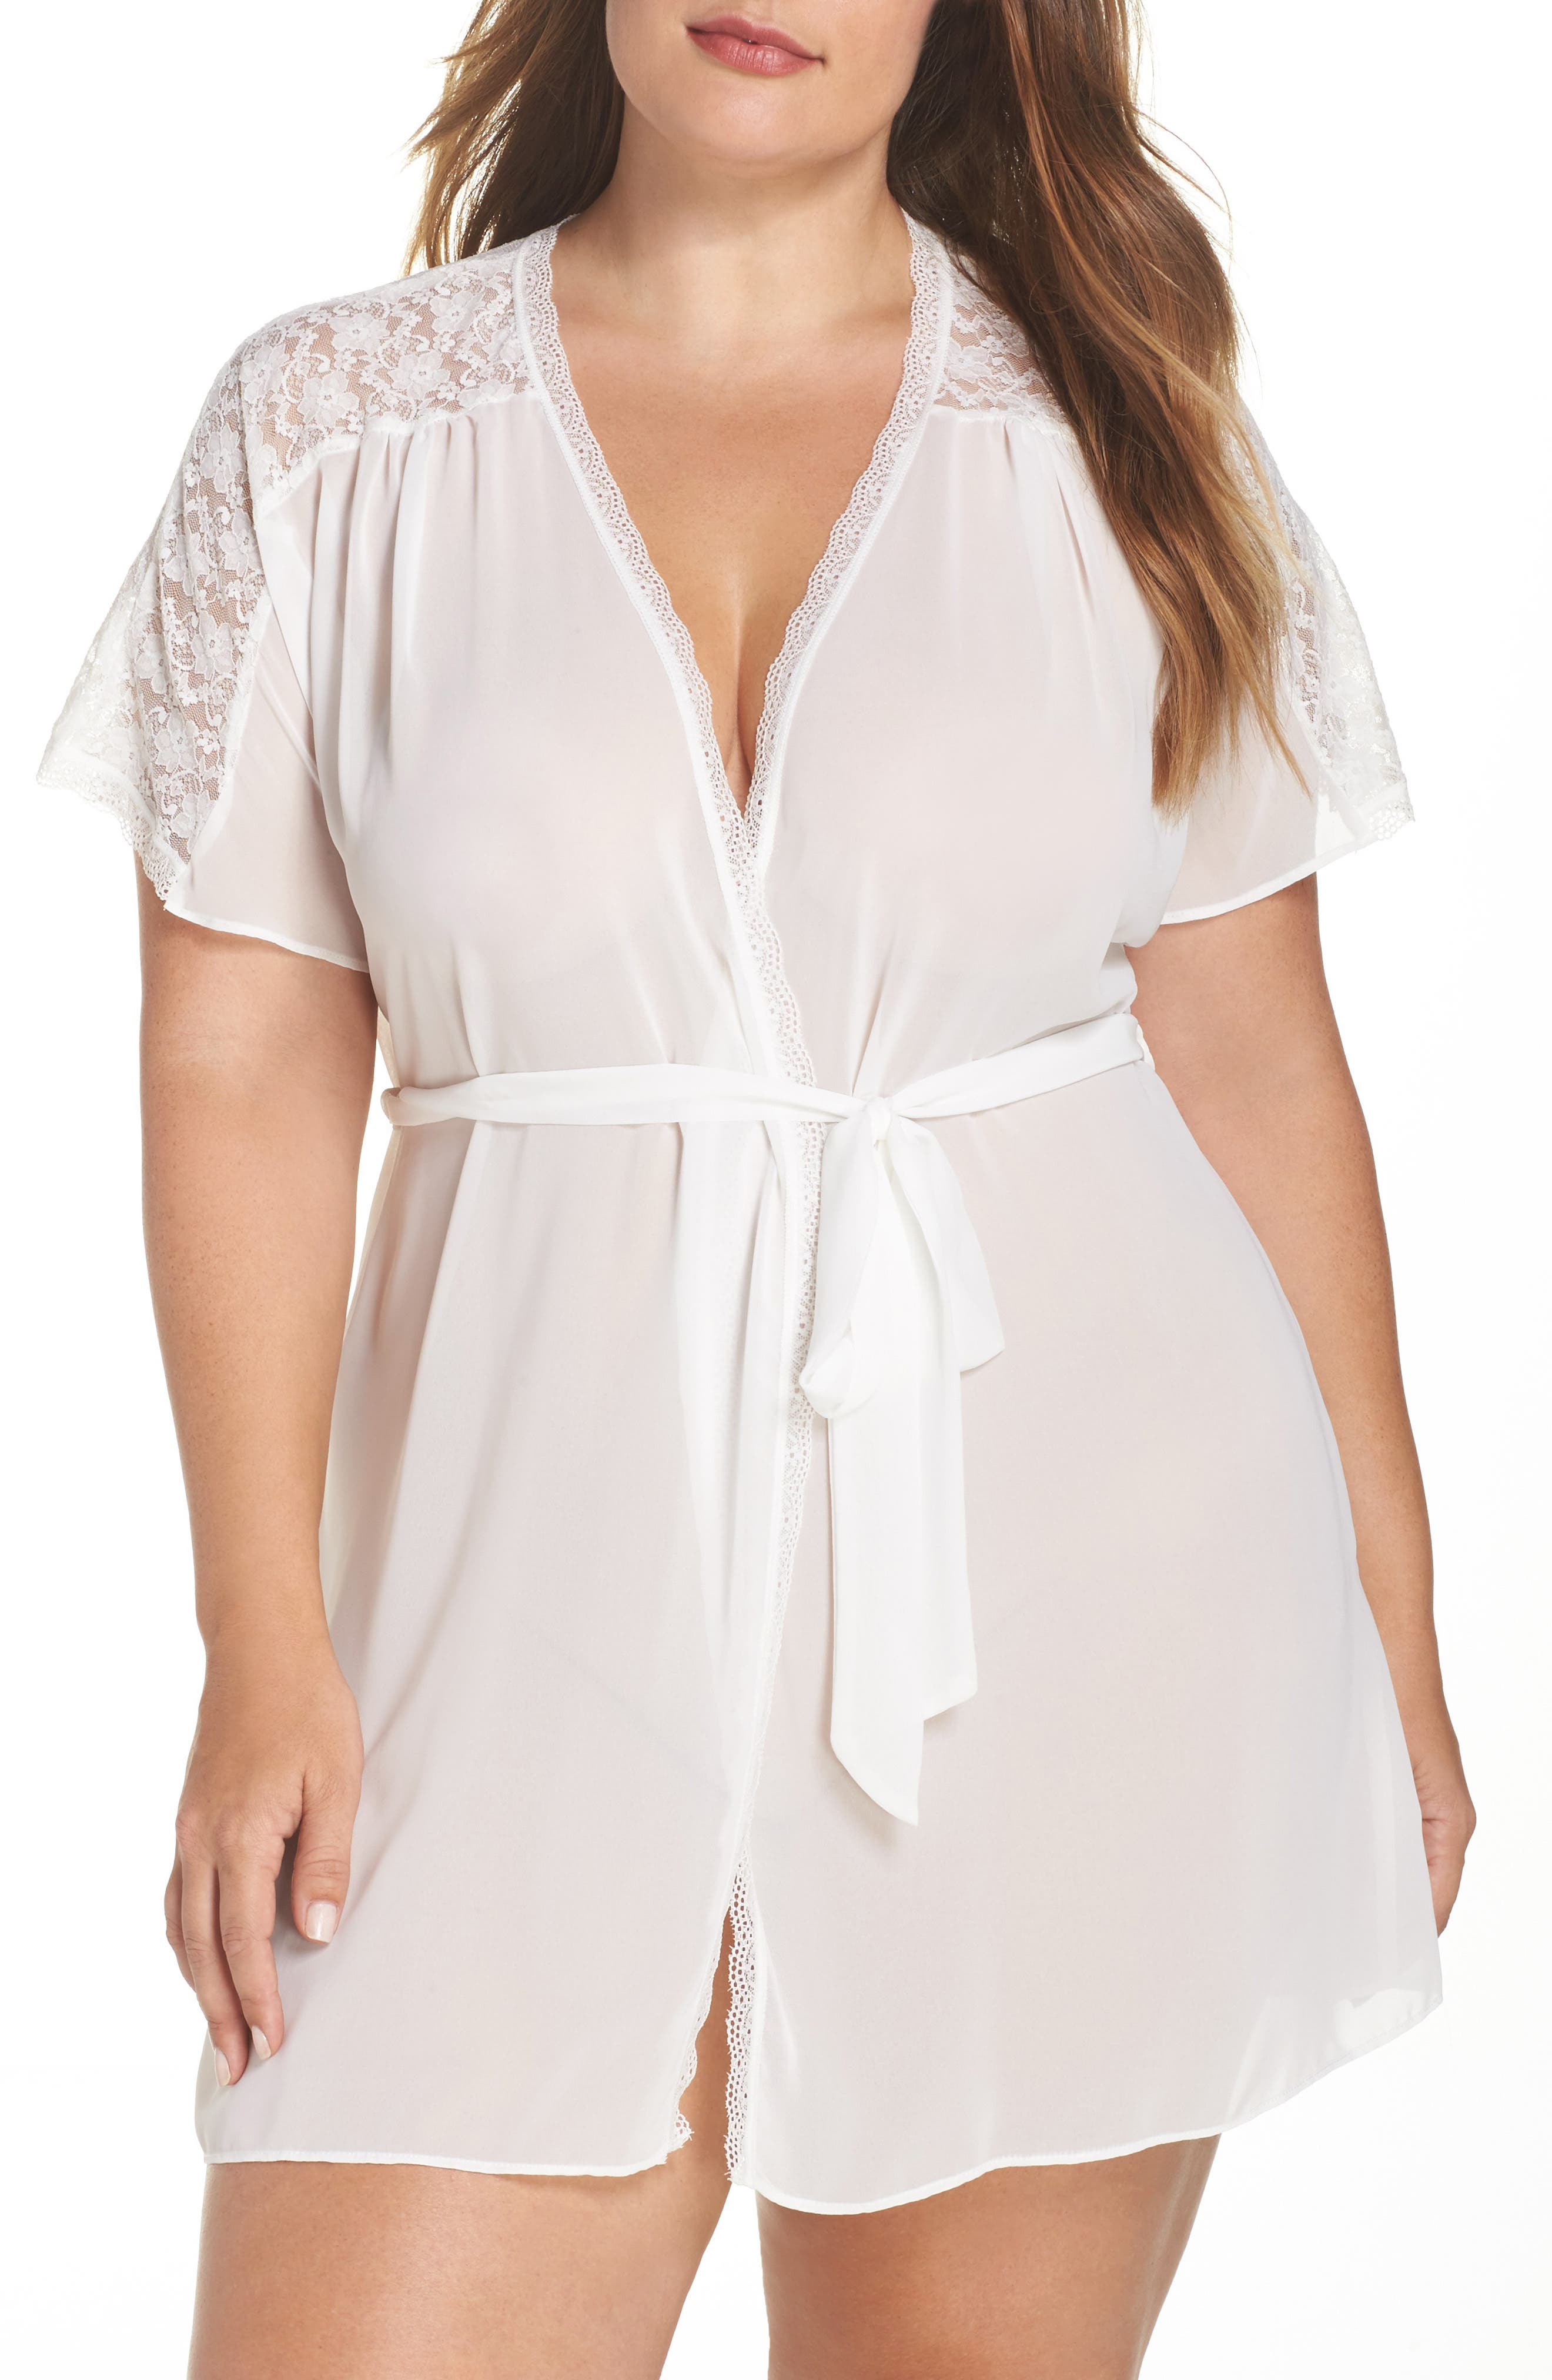 IN BLOOM BY JONQUIL Chiffon Robe, Main, color, IVORY